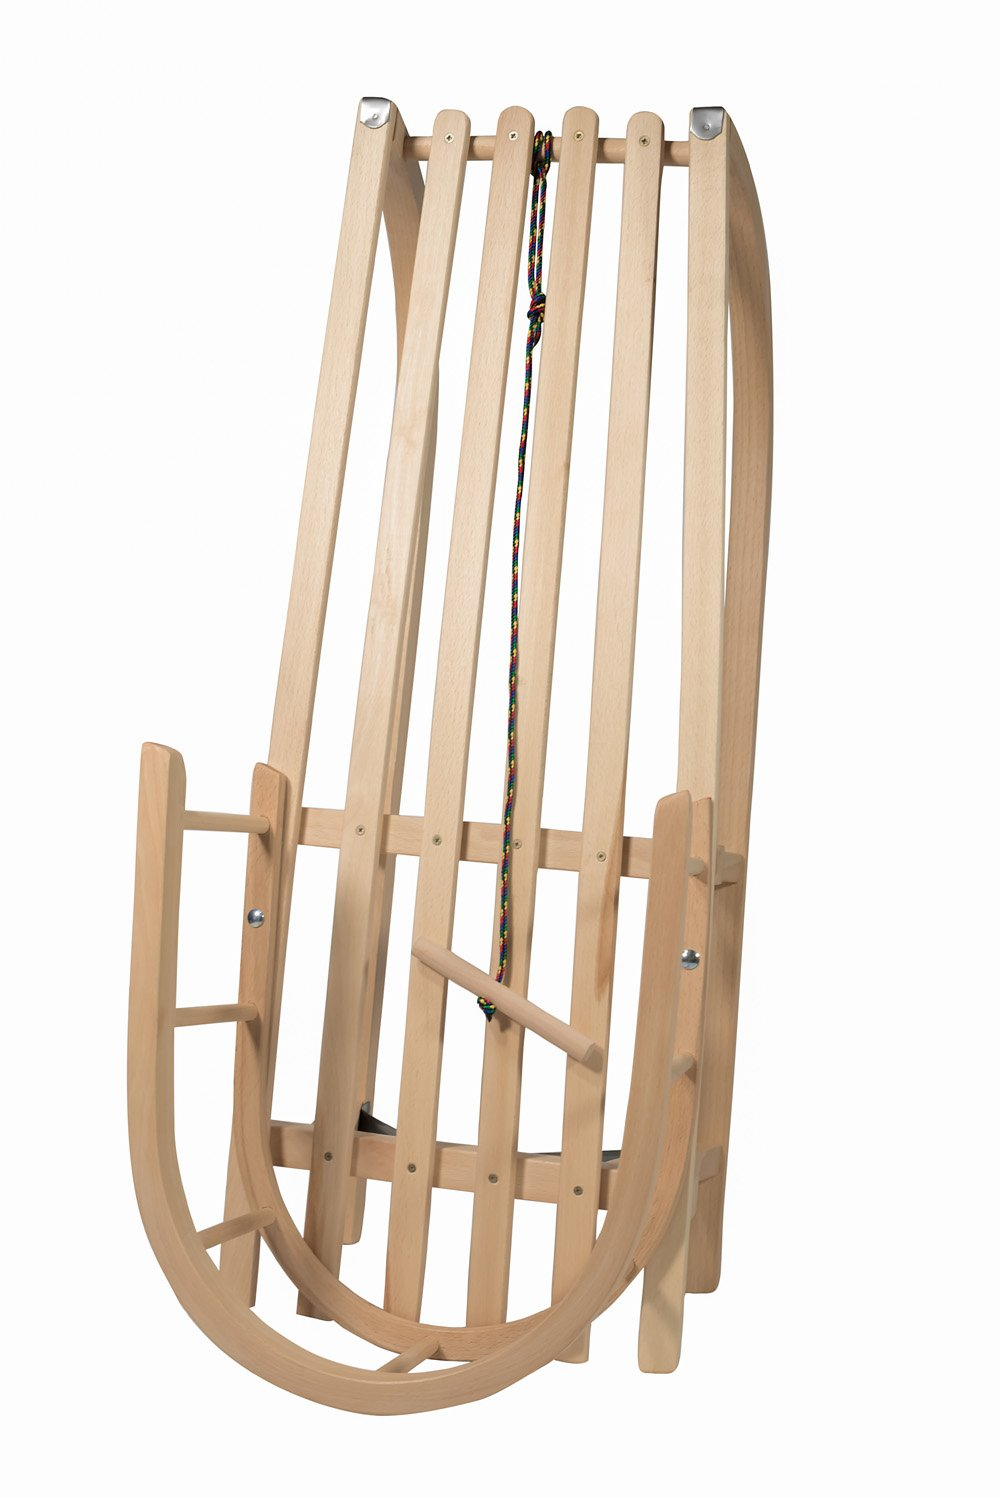 Wooden Sled with Back Support - Sanki Drewniane by domitp